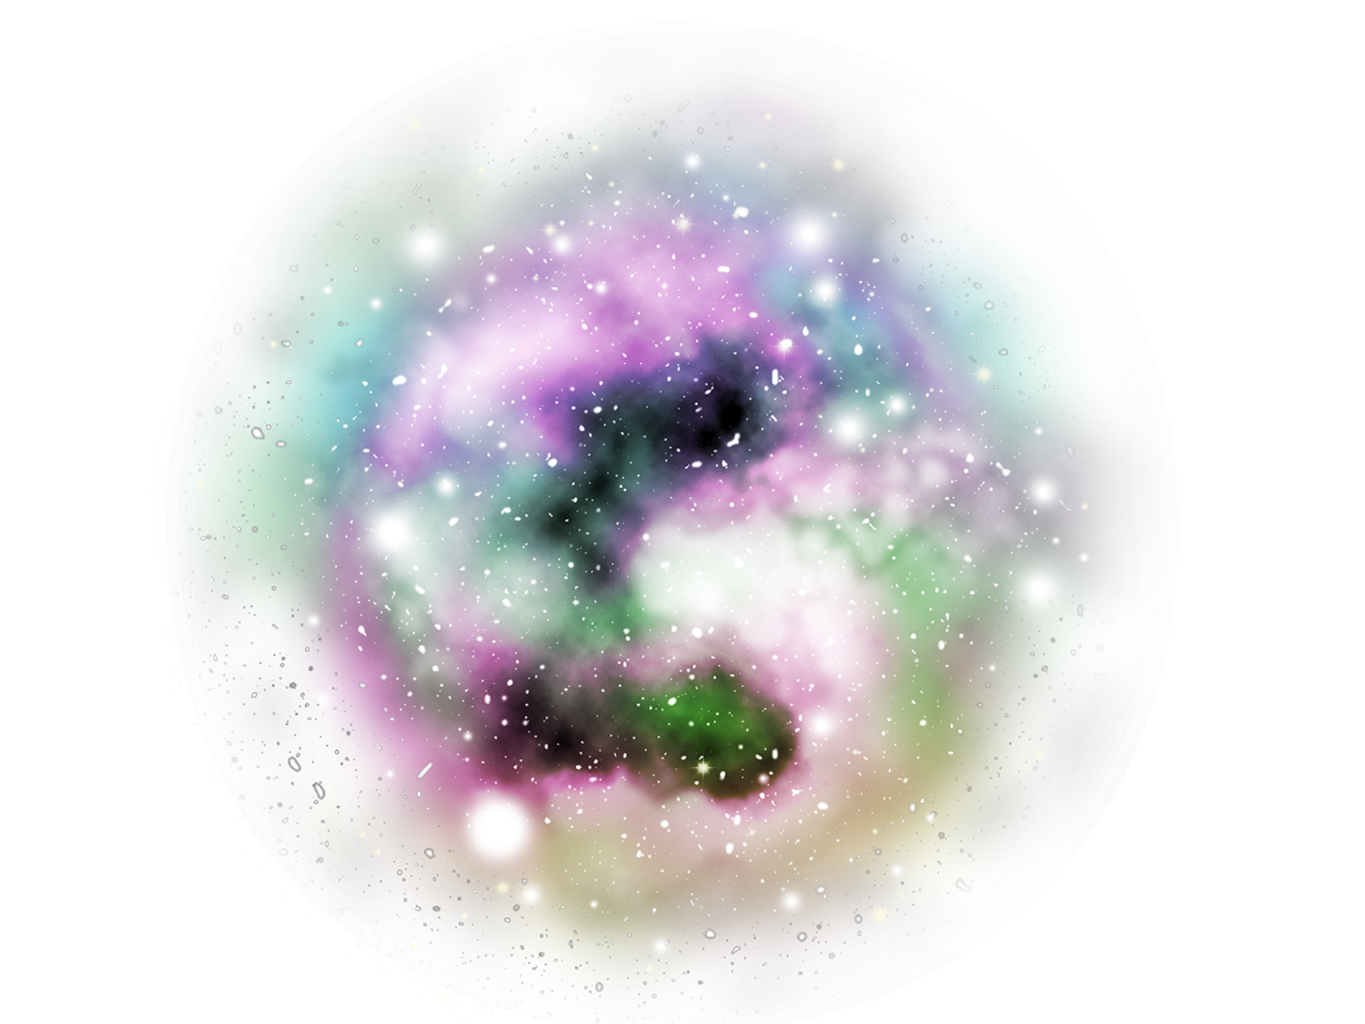 Galaxy star clipart image download FreeToEdit clipart png stars galaxy with a transparent... image download